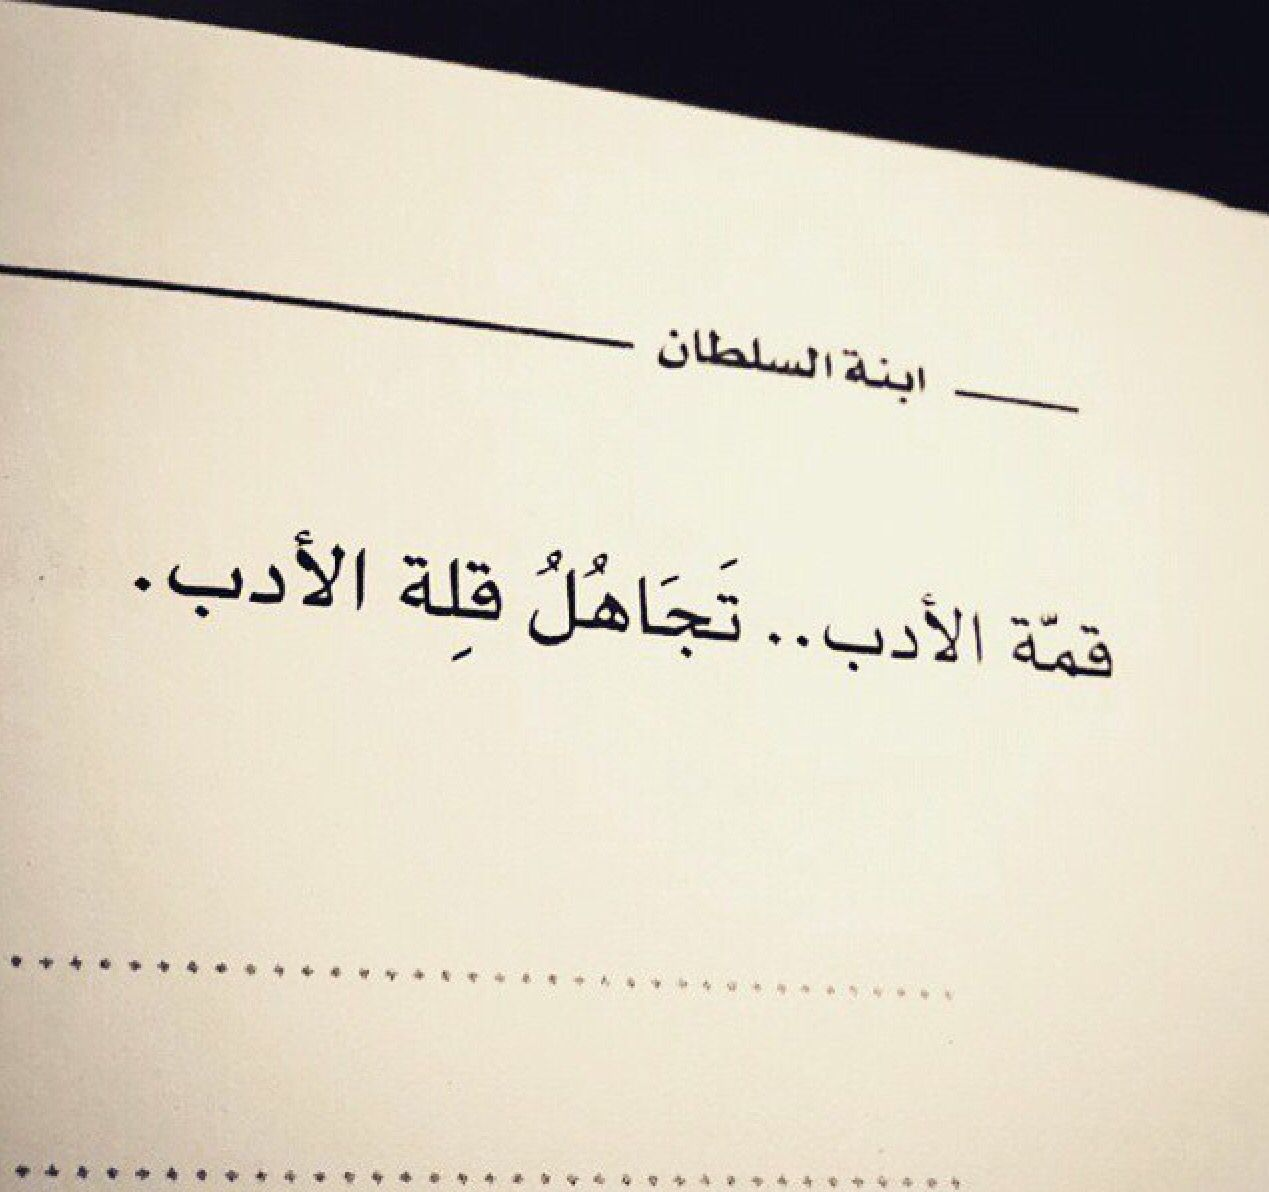 Pin By Shaaban Abdel Lattif On بالعربي Words Quotes Funny Arabic Quotes Photo Quotes